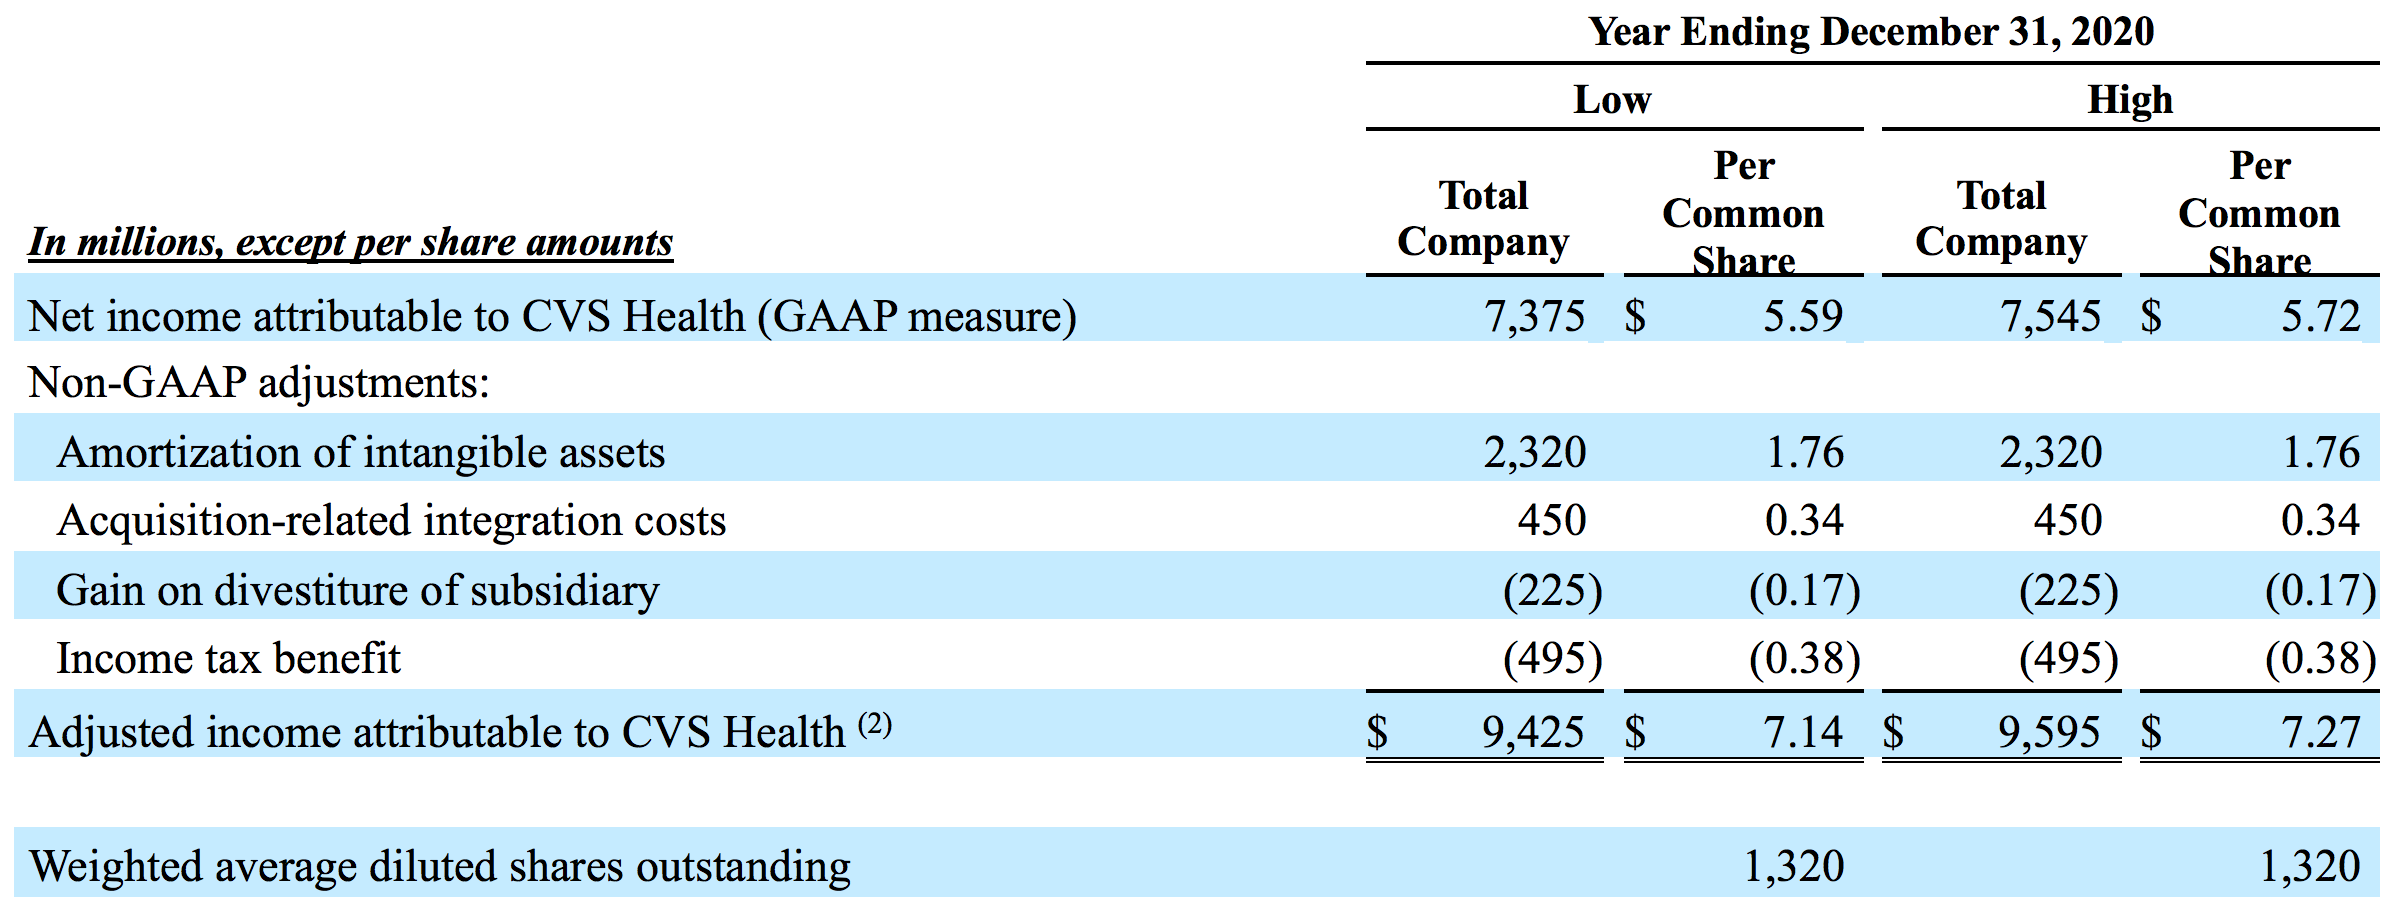 Adjusted Earnings Per Share Guidance (Unaudited)